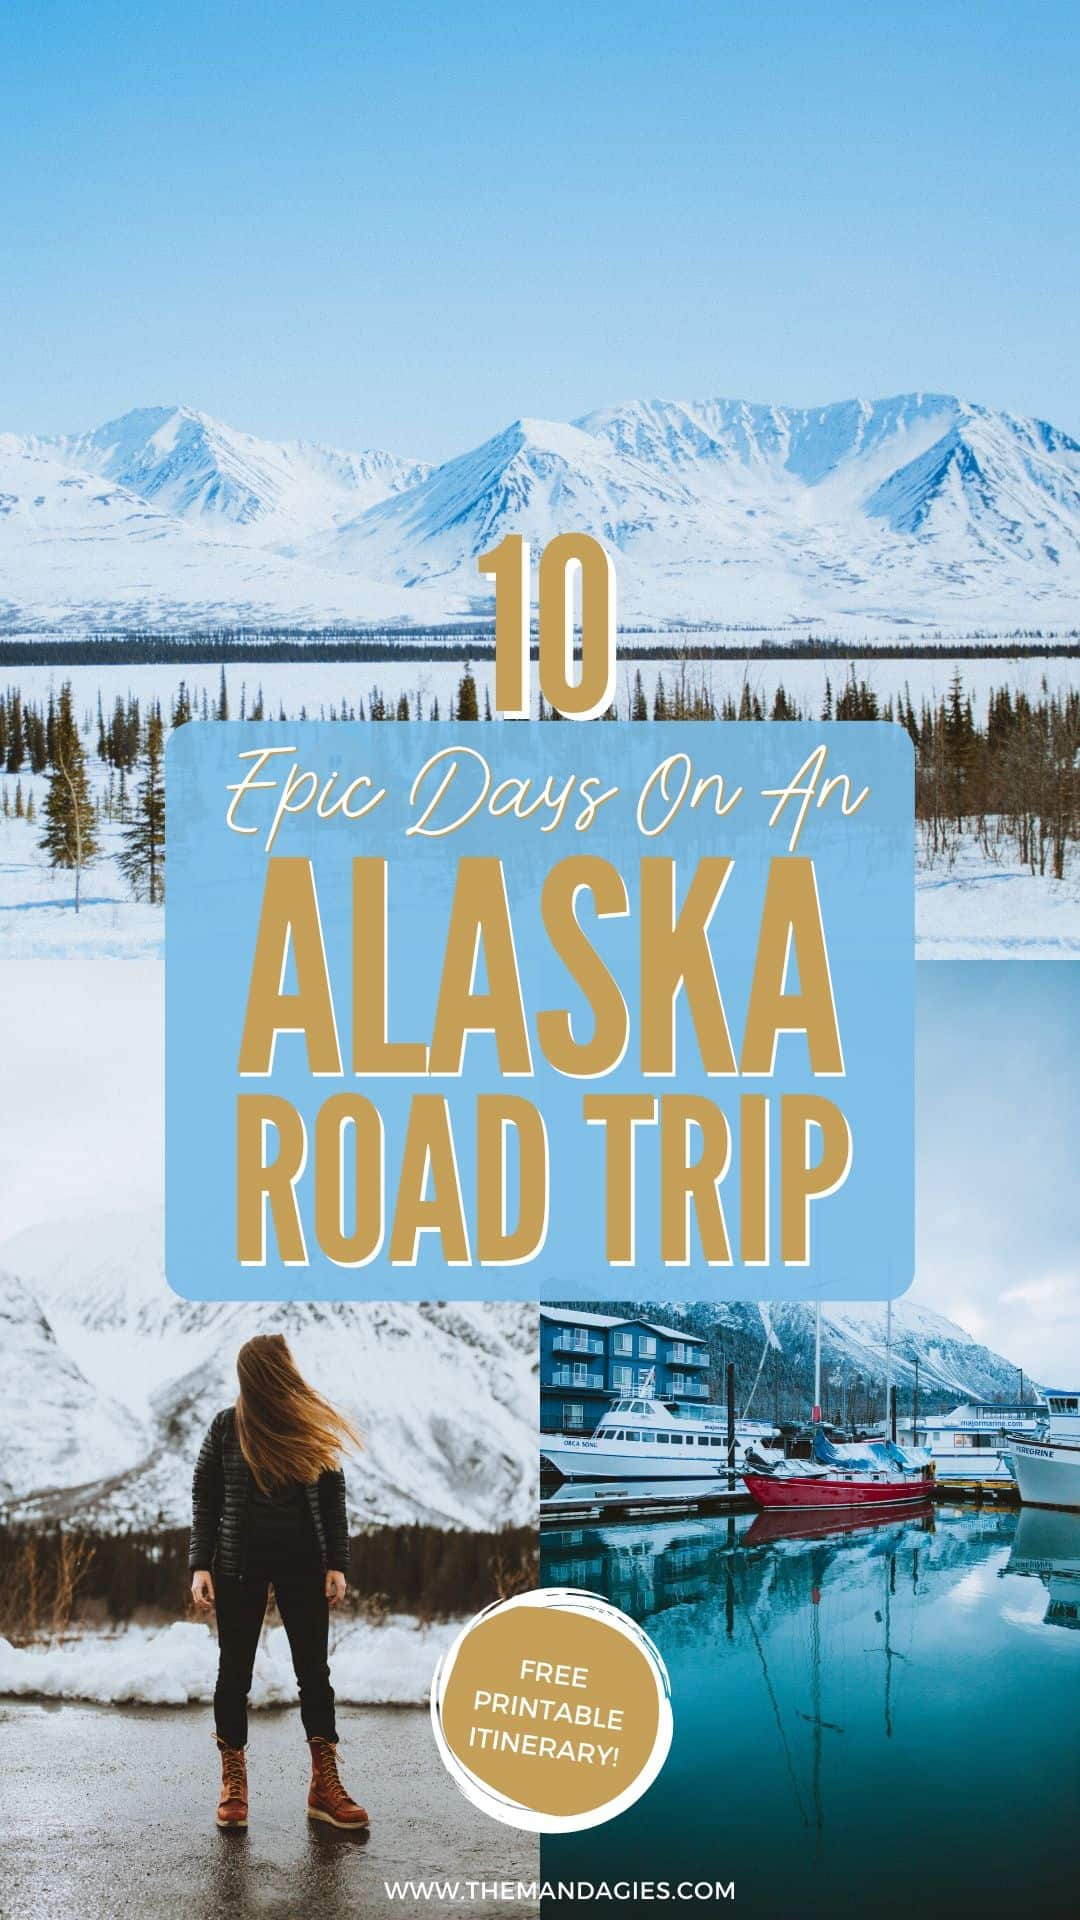 Explore the last frontier with the ultimate 10-day Alaska road trip! We're sharing all the best stops, from Fairbanks, Denali National Park, Kenai Fjords, Seward, and Anchorage. Save this post for a future trip to Alaska! #alaska #roadtrip #PNW #pacificnorthwest #anchorage #fairbanks #denali #photography #vwwestfalia